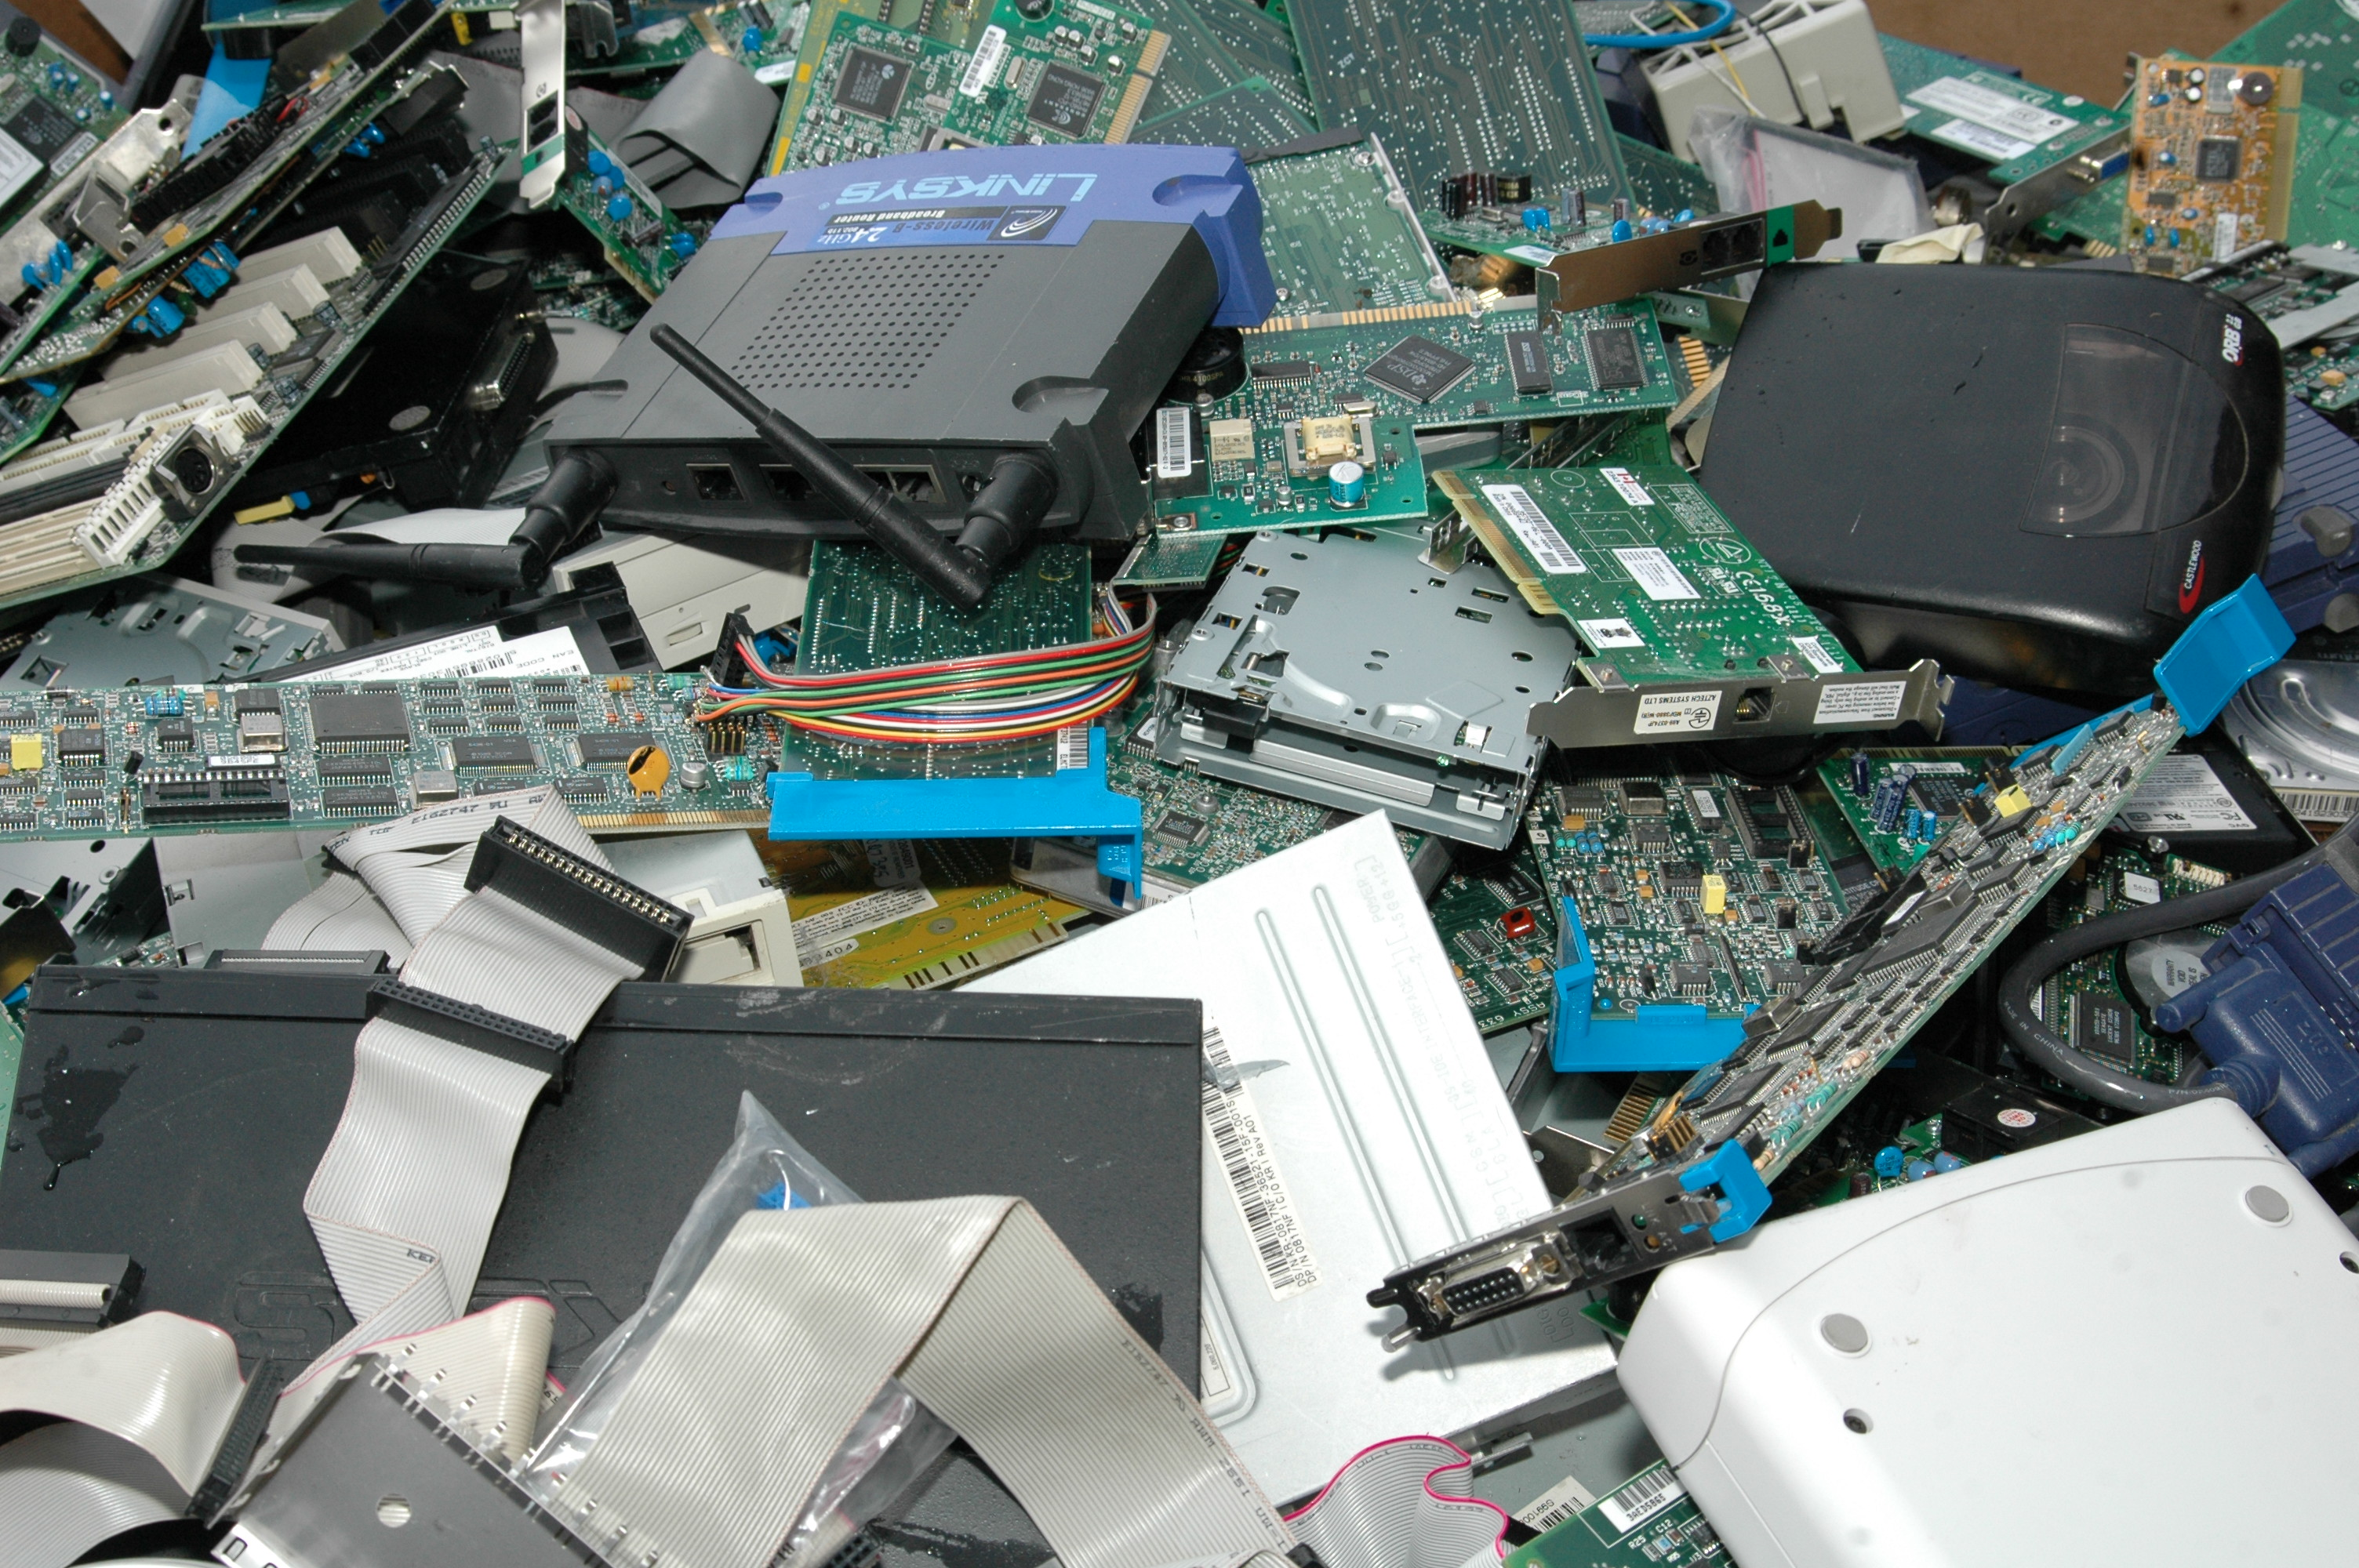 Recycle Computer Hardware Celbridge Cabs Circuitboardclockjpg Whats Different About Recycling Macs Than Other Computers